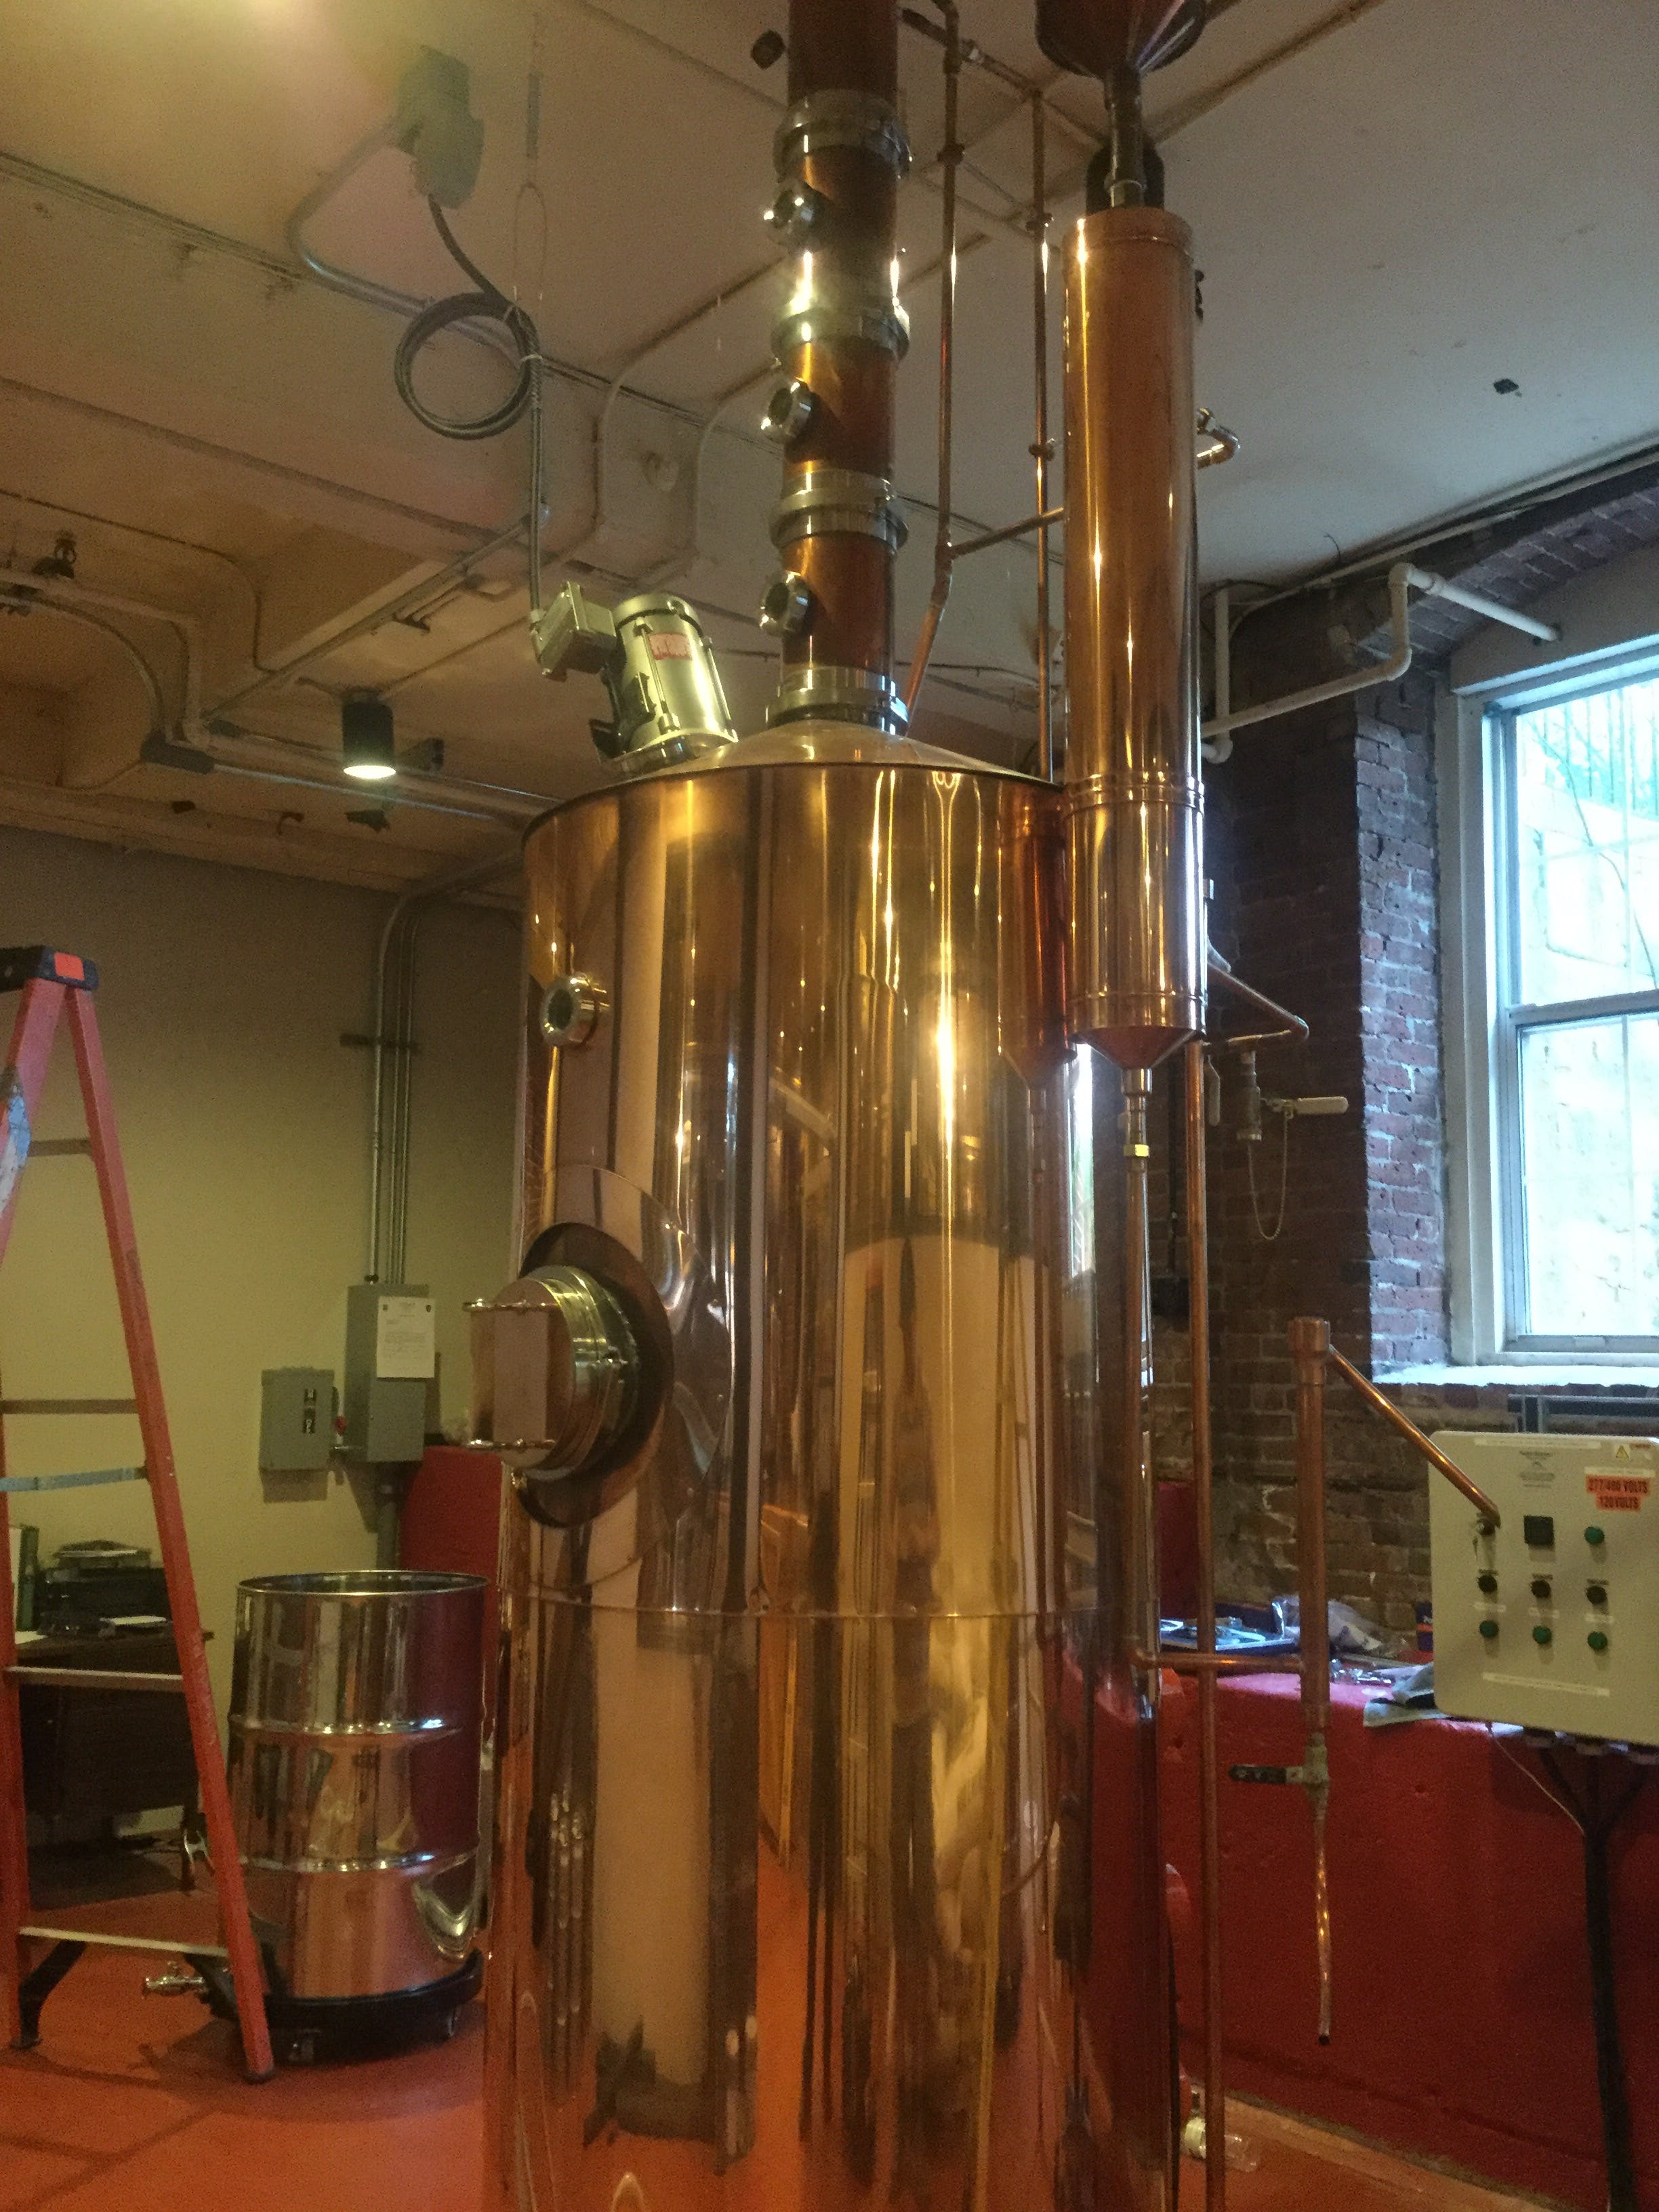 200 Gallon Copper Pot Still Distillation still sold by Steven Stillz LLC